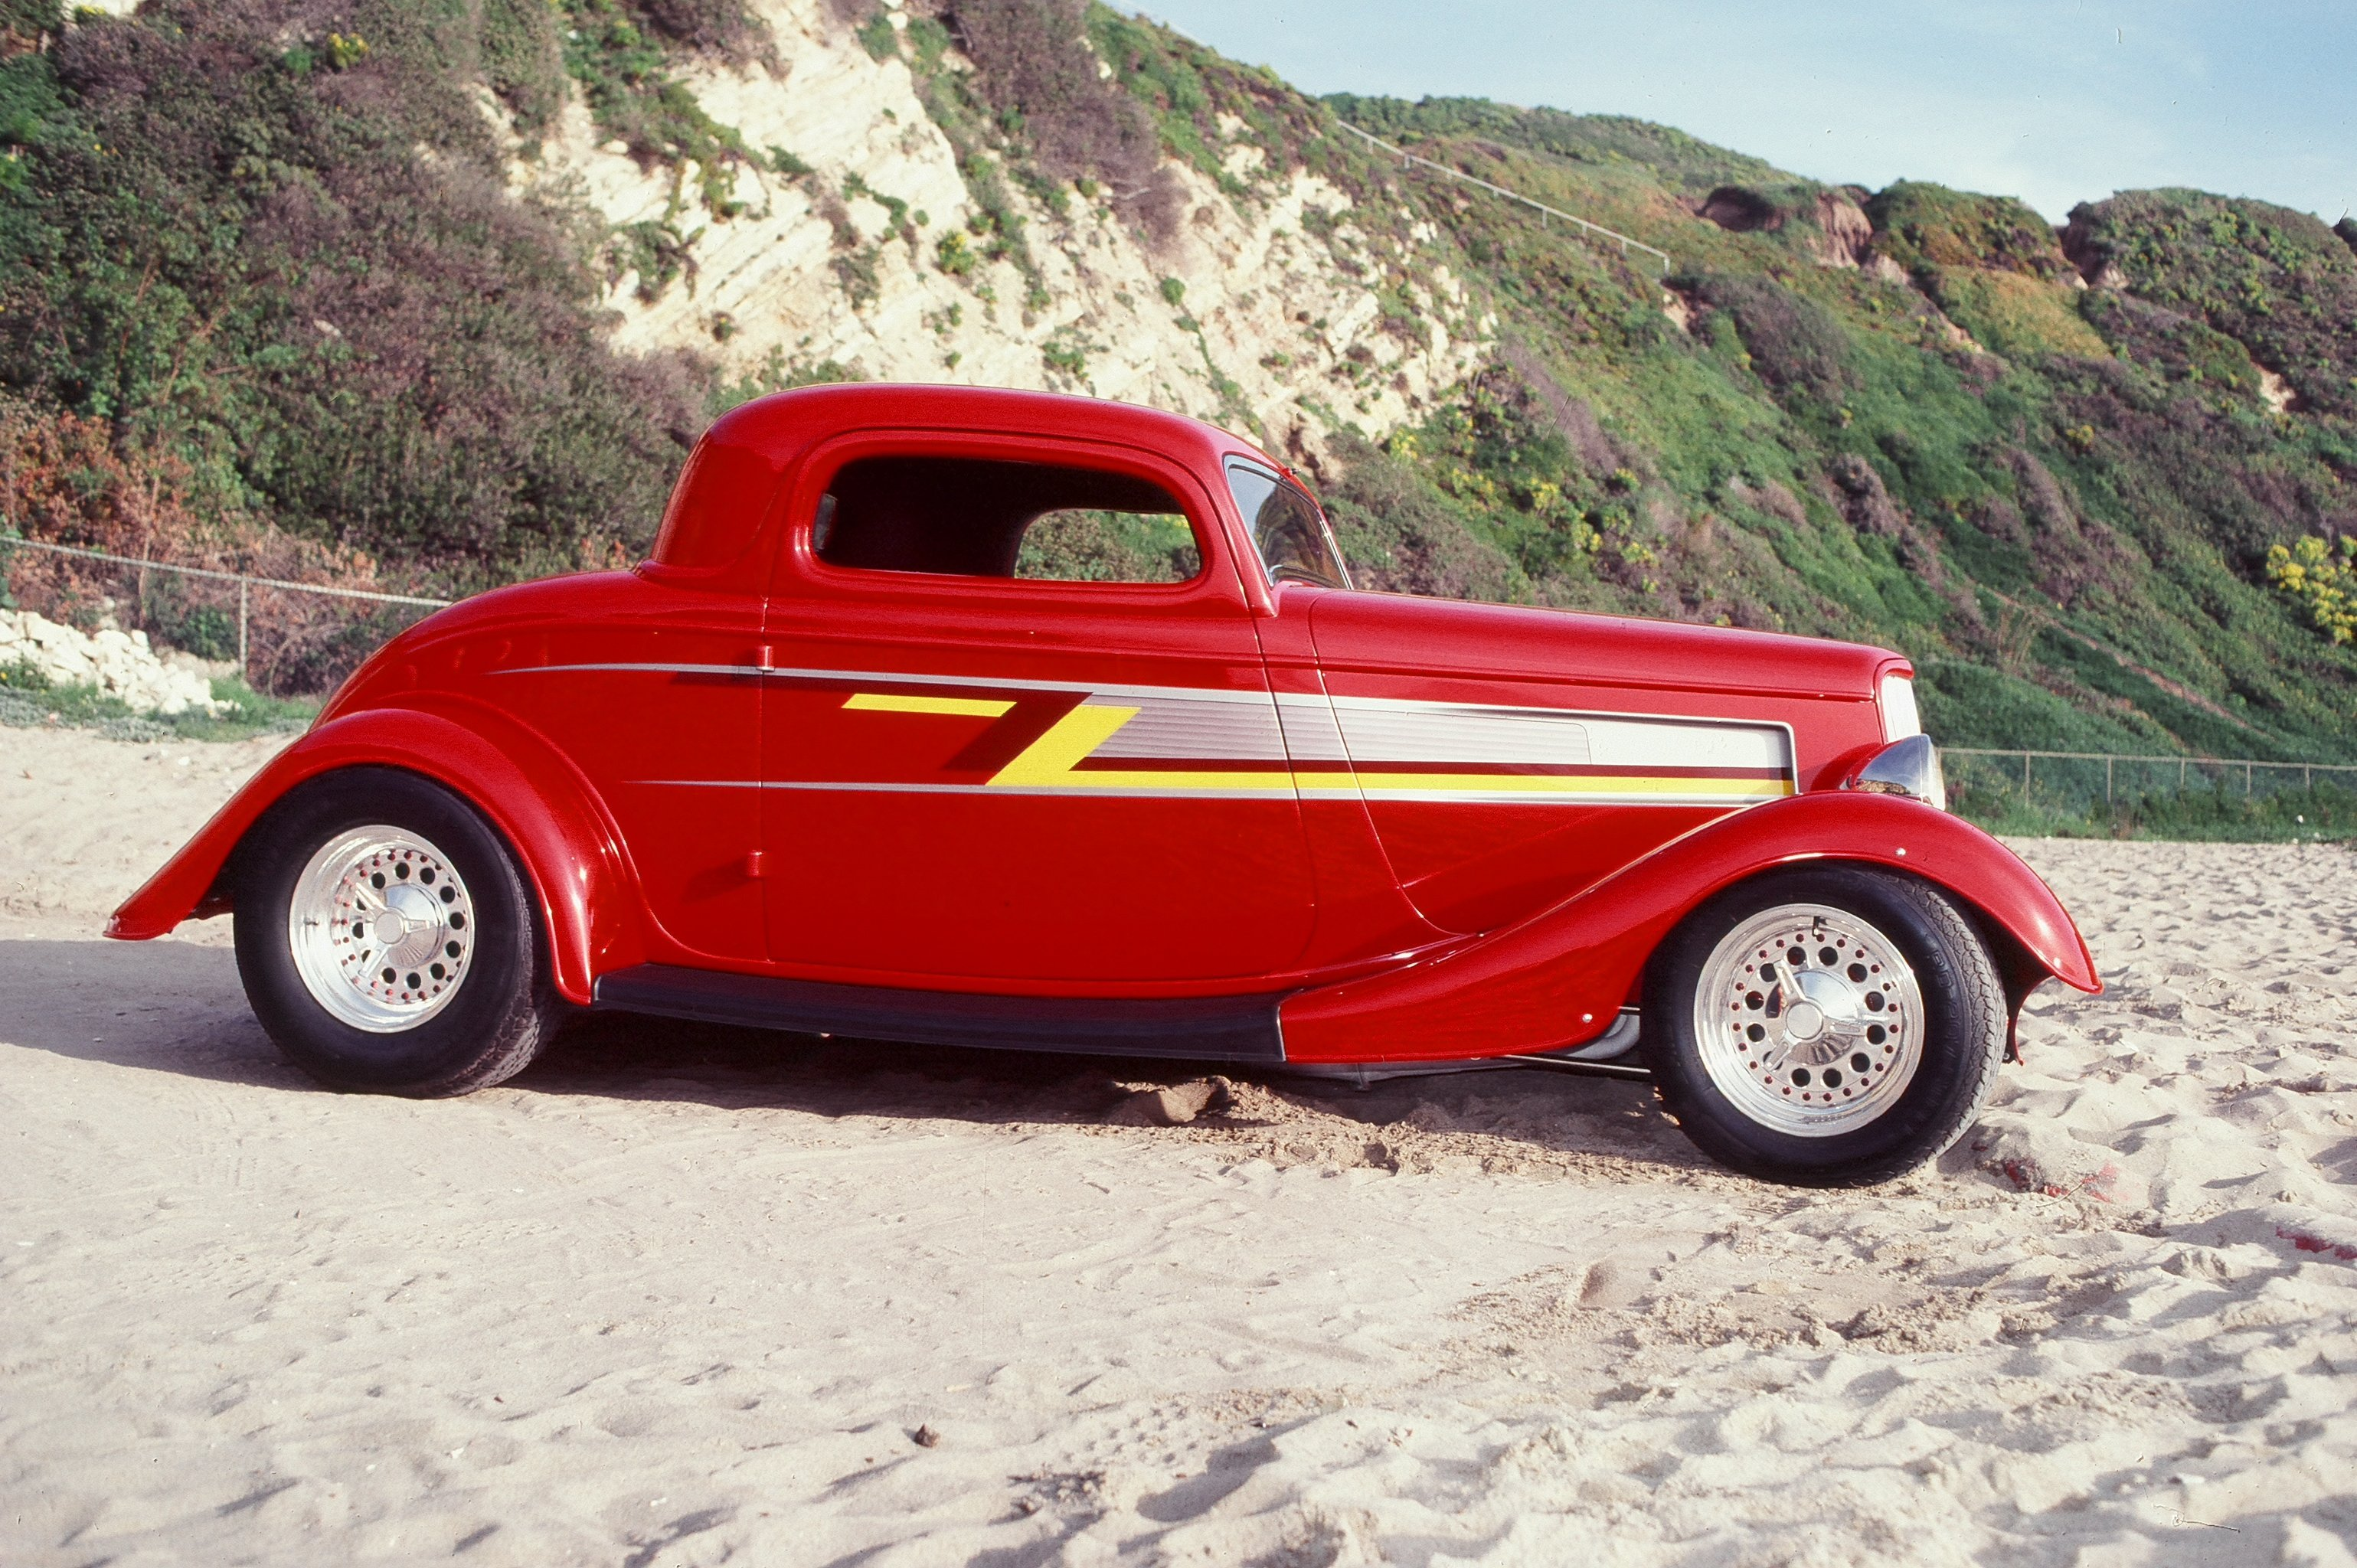 hot-rods-you-should-know-billy-gibbons-1933-ford-eliminator-0016.jpg